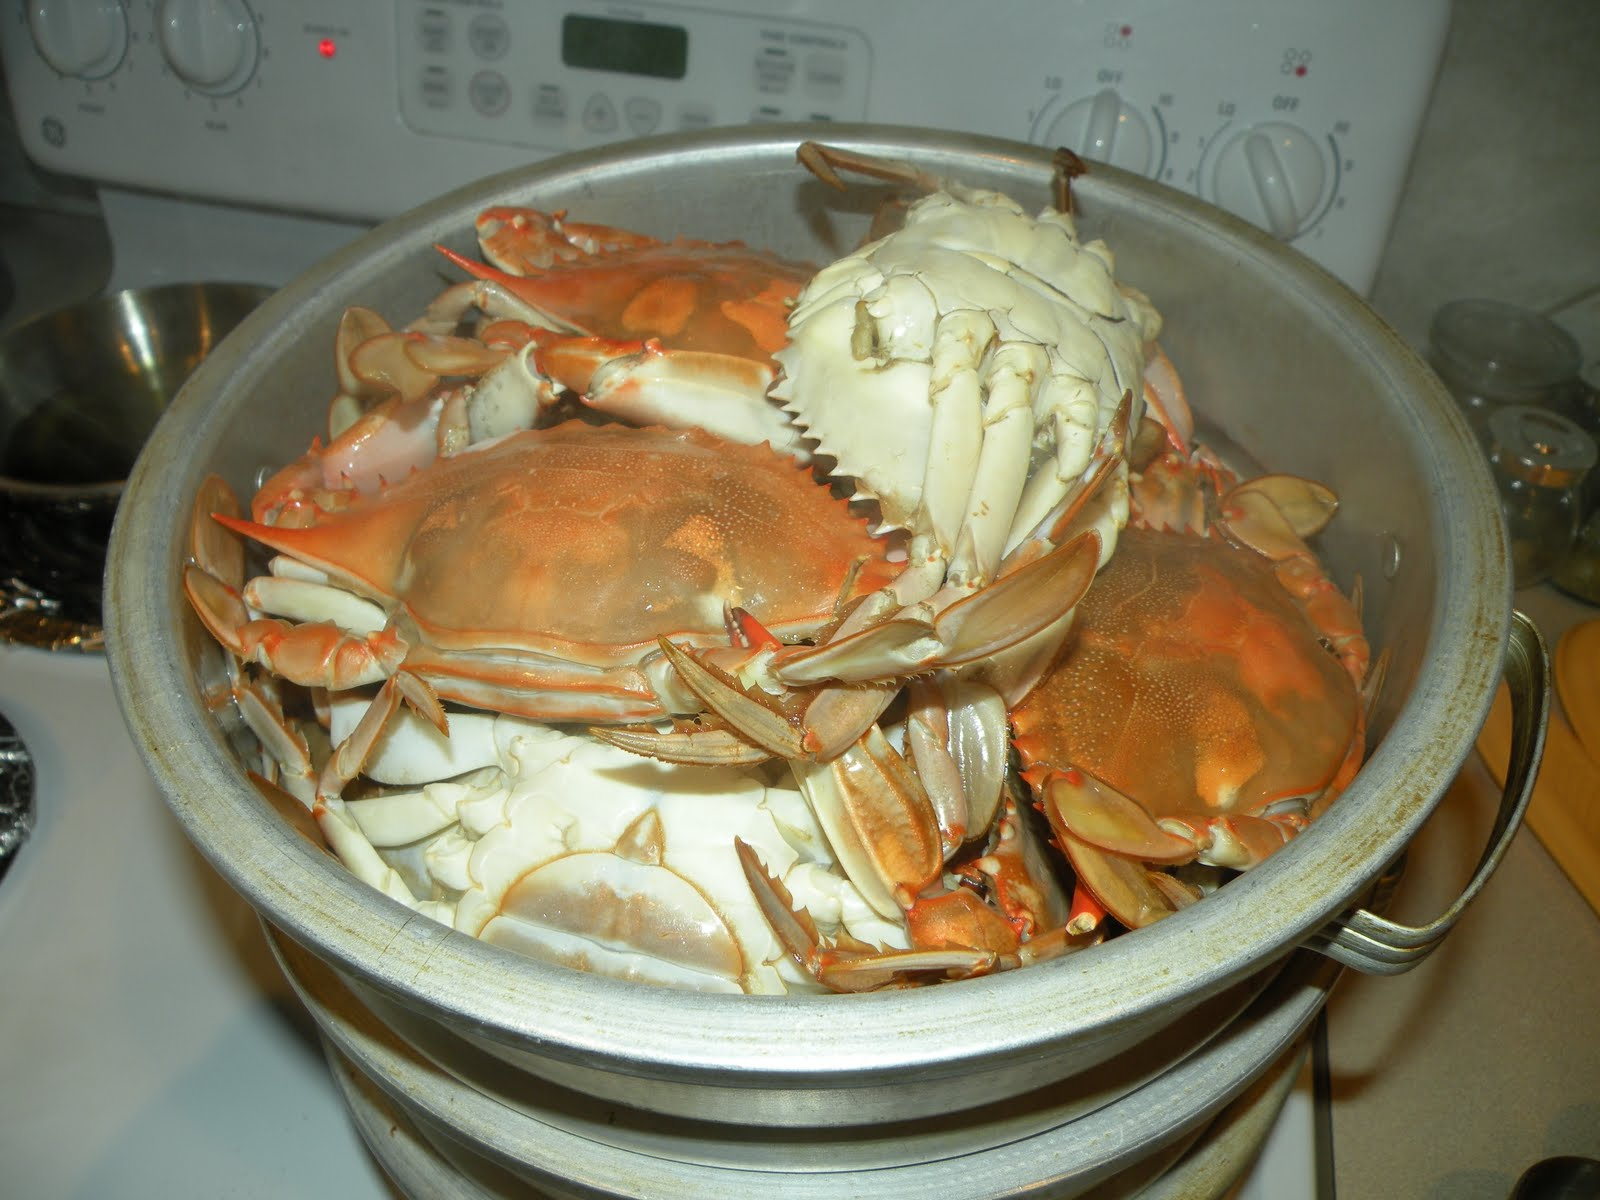 Crabs can be setamed in 30 minutes